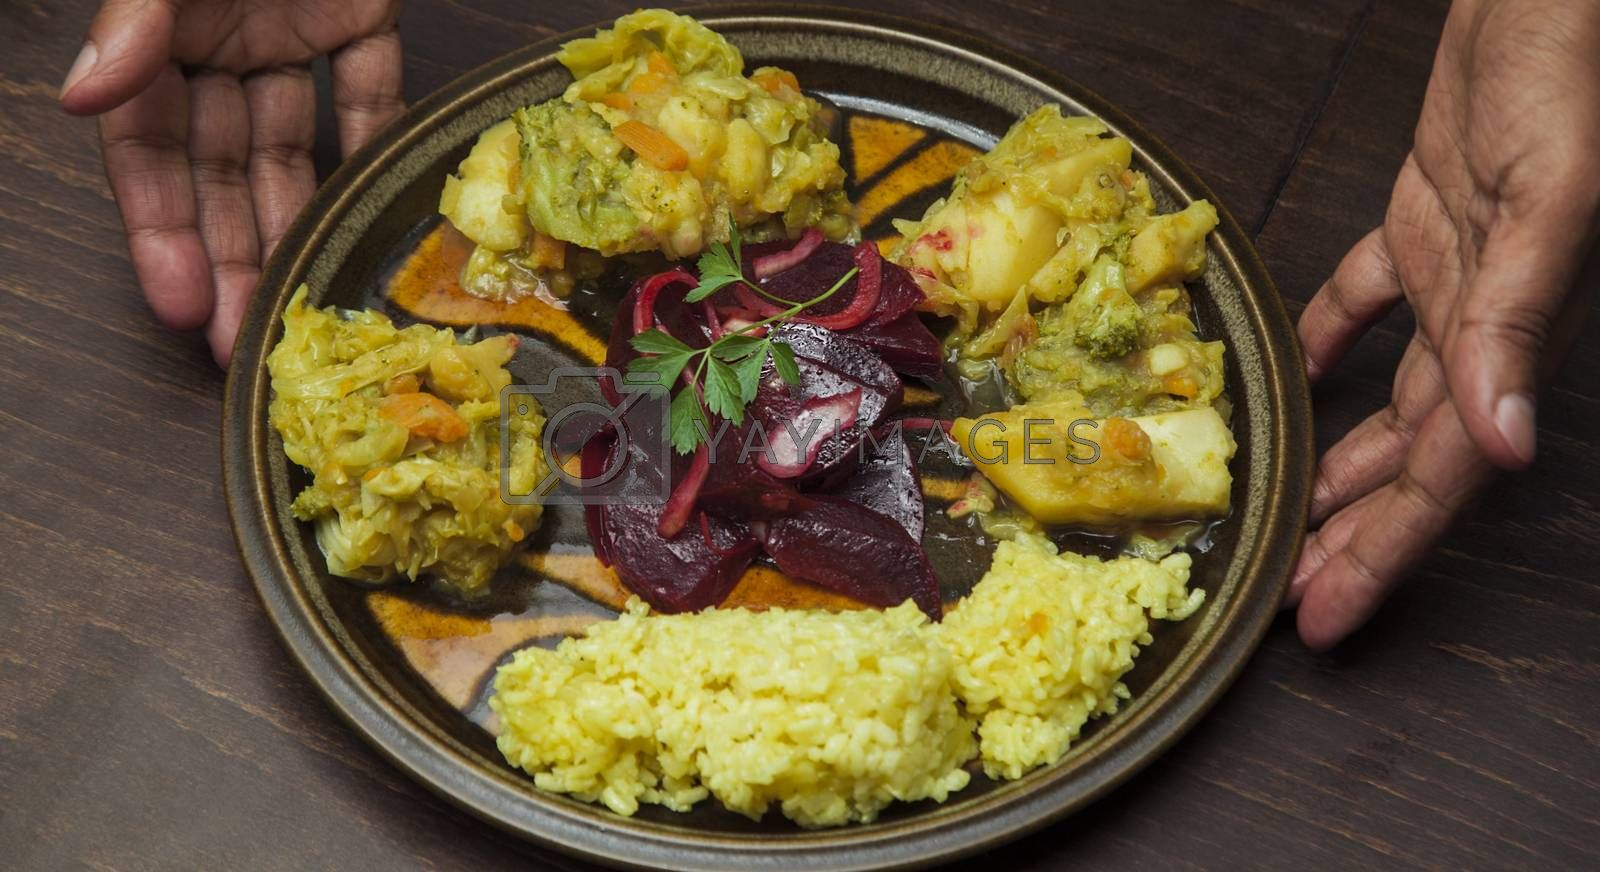 An afro-american man s hands are presenting a plate with vegetable stew and salad of red beetroot.